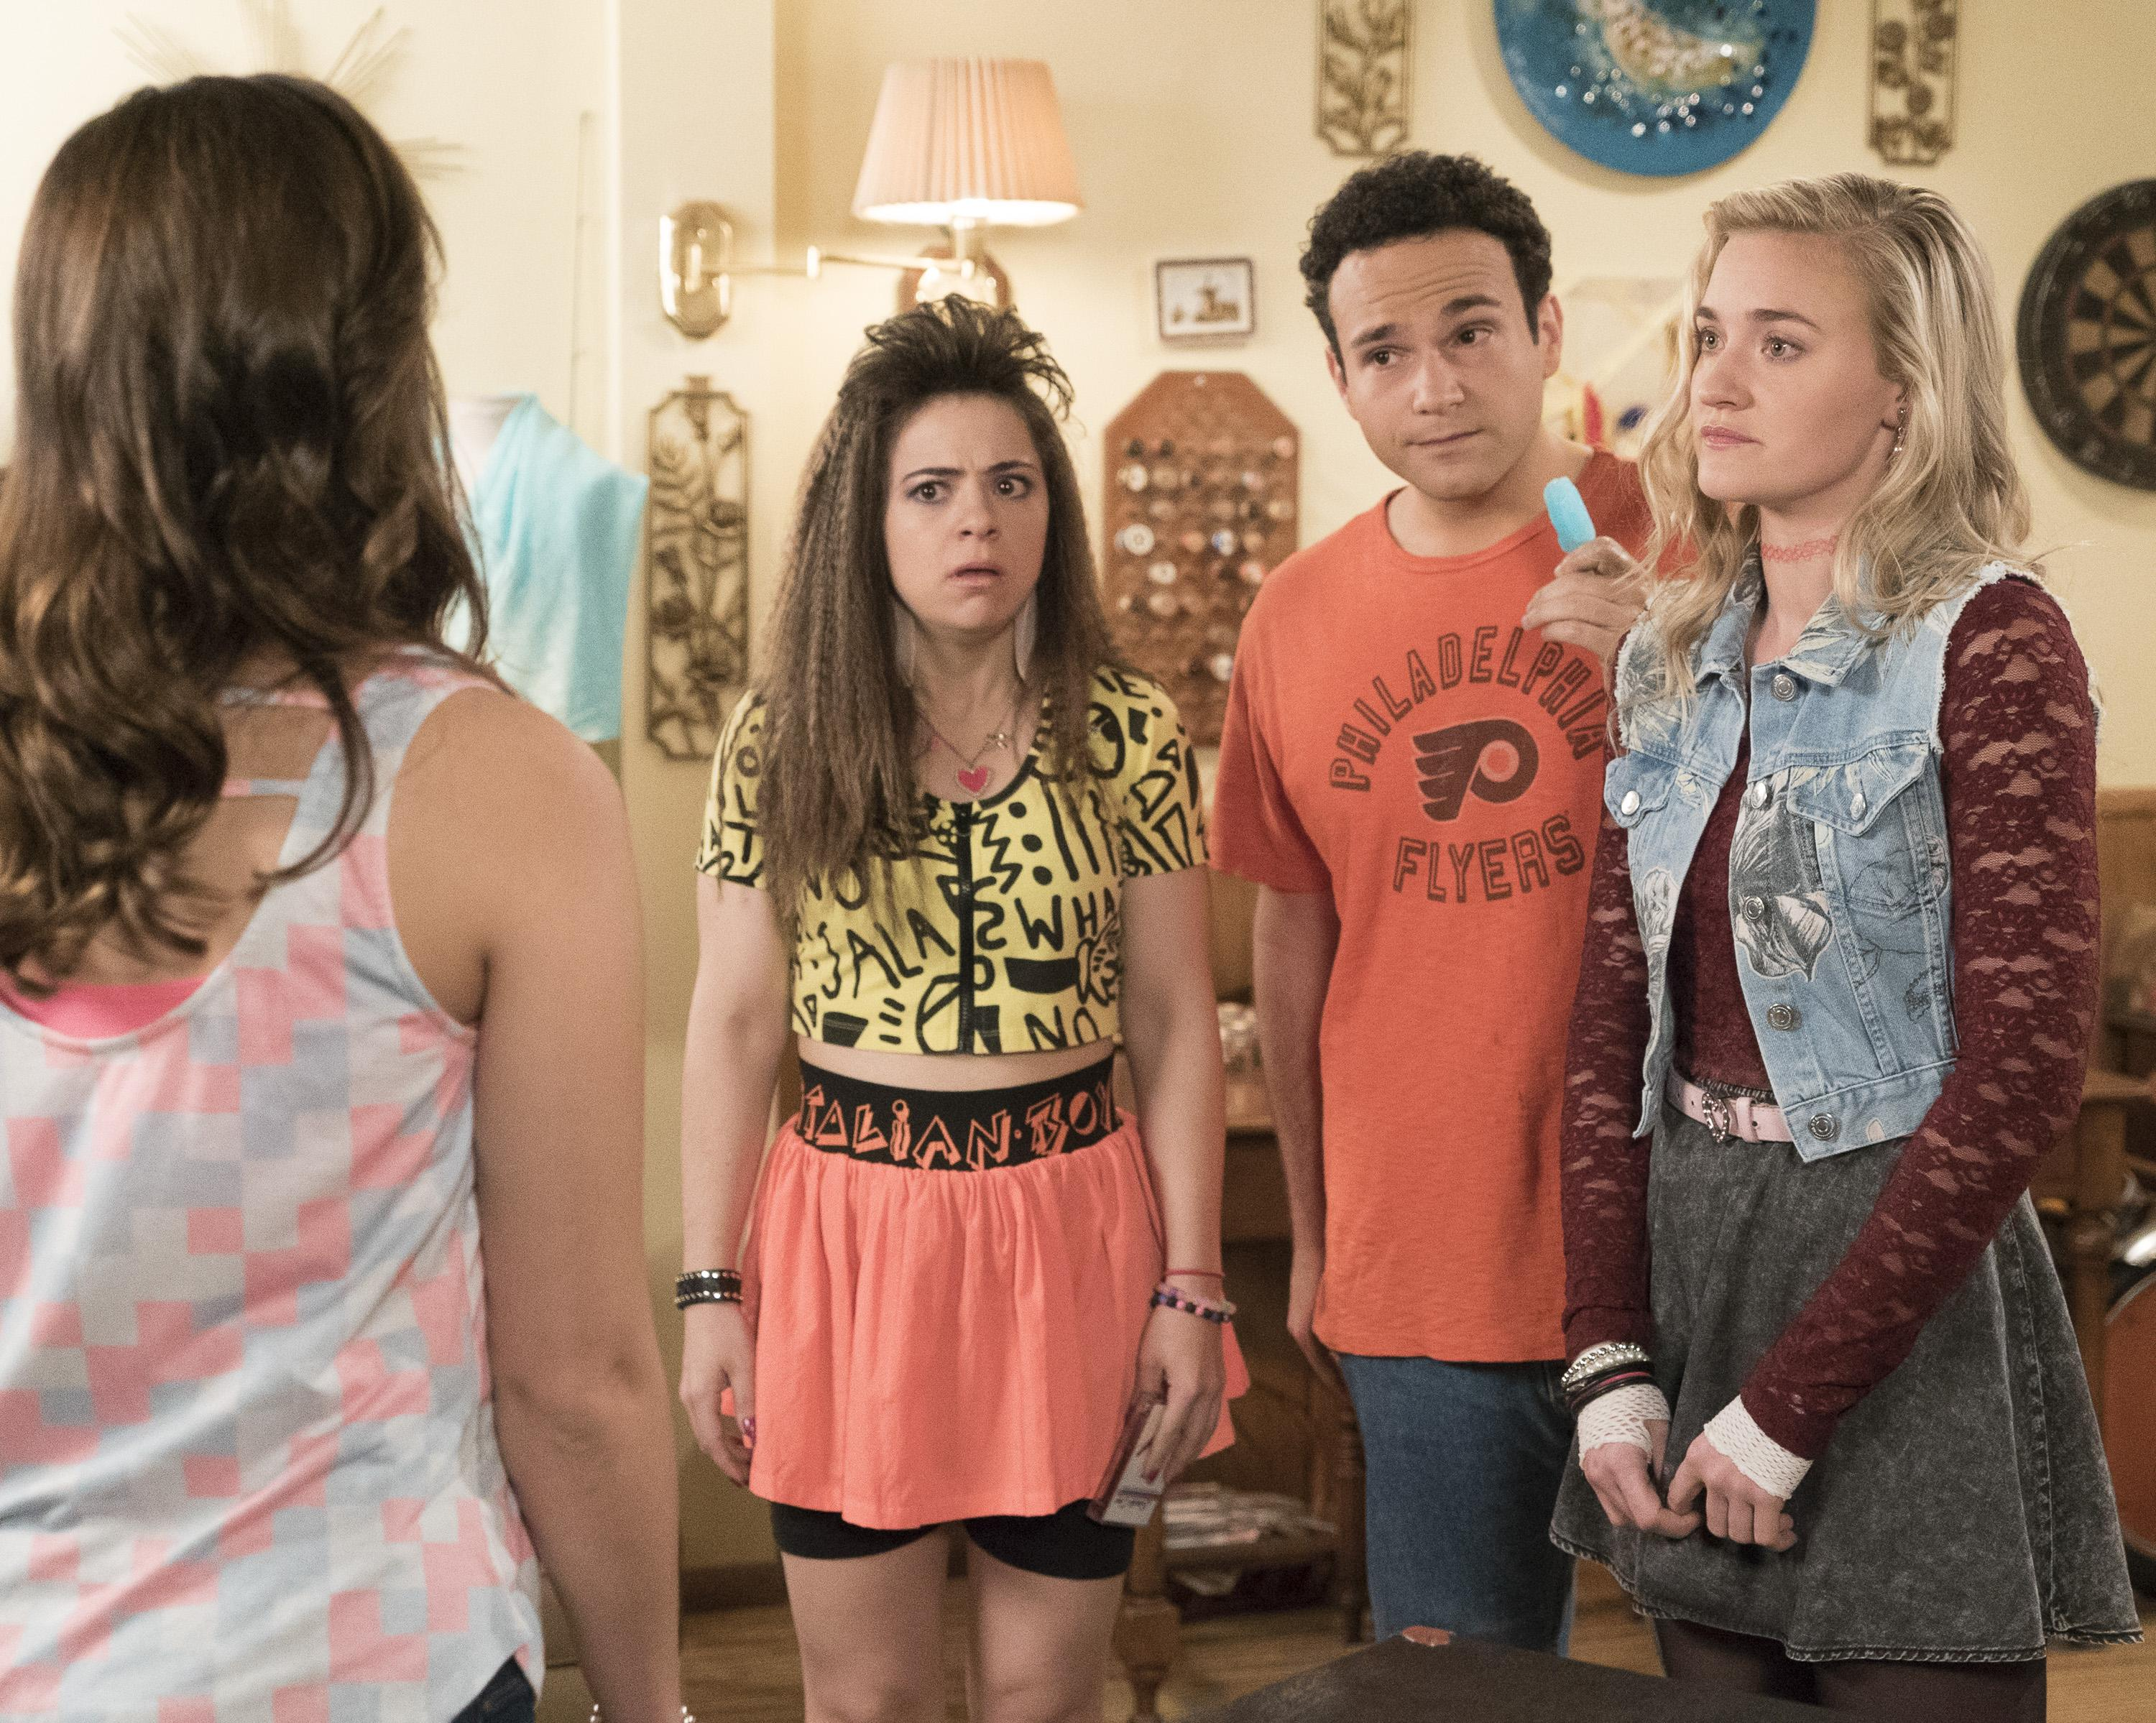 Category:The Goldbergs Episodes | The Goldbergs and Schooled